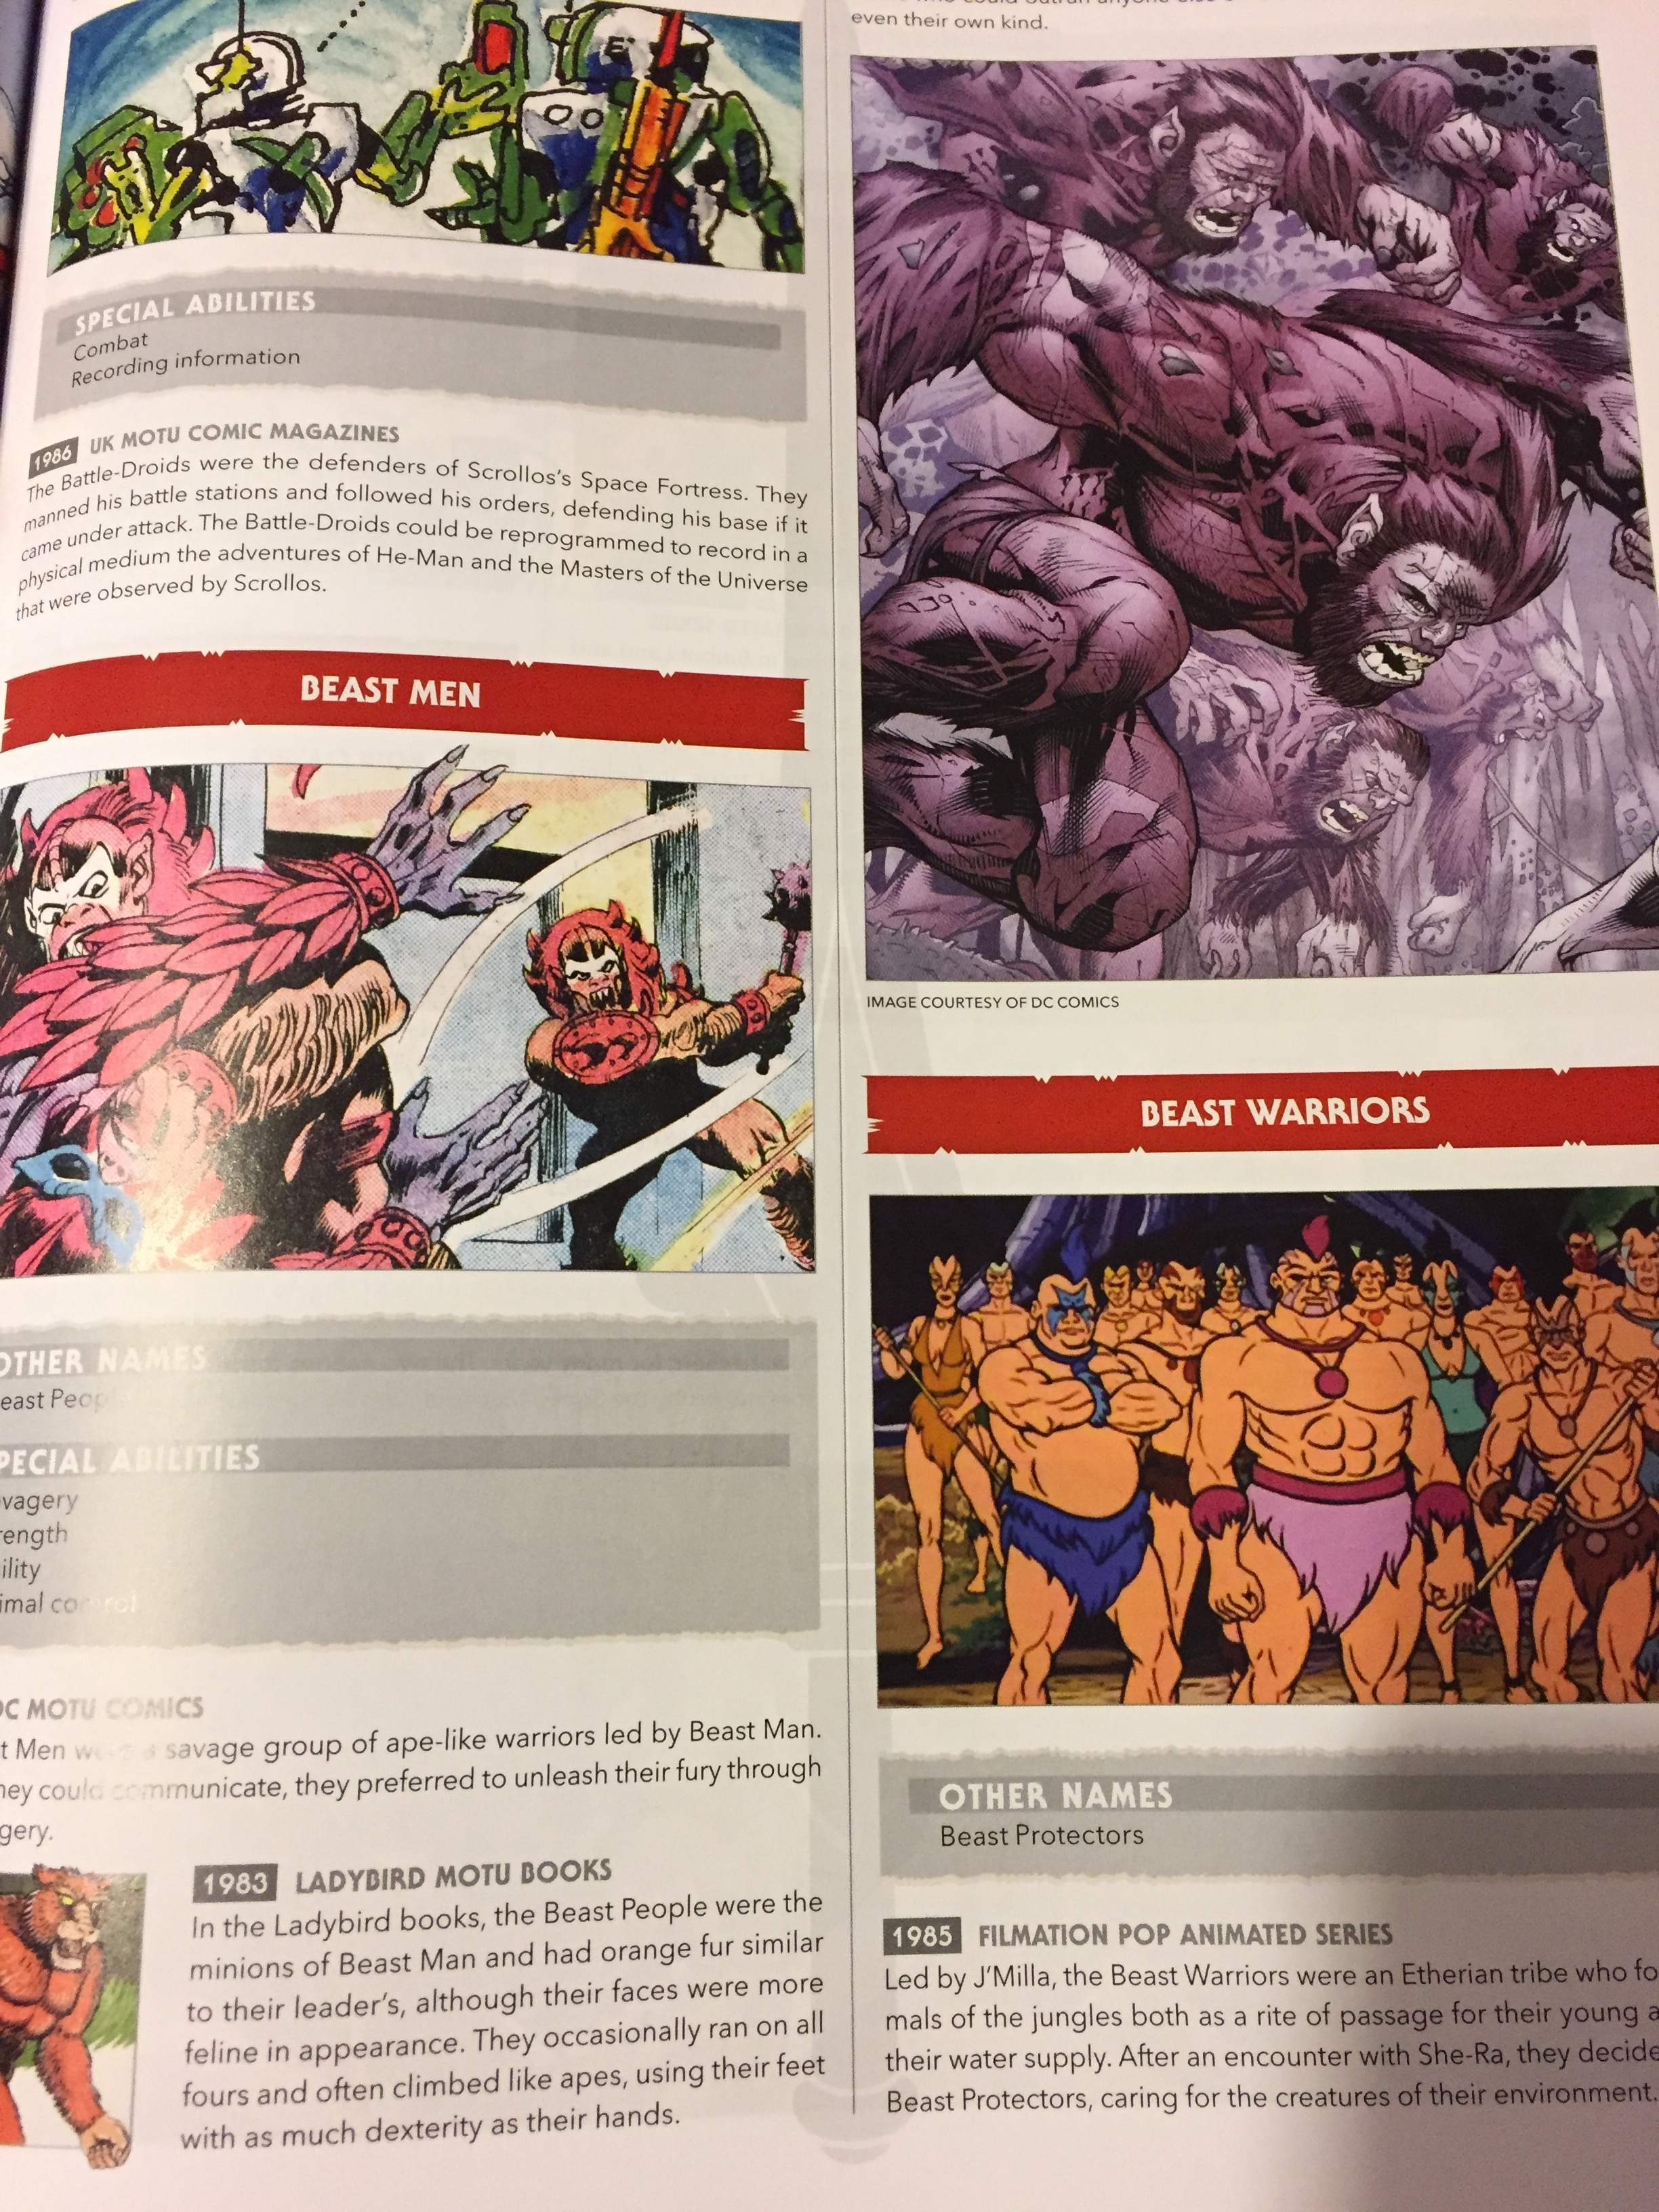 In addition to the individual characters like Beastman there is also a section for groups and factions when applicable.